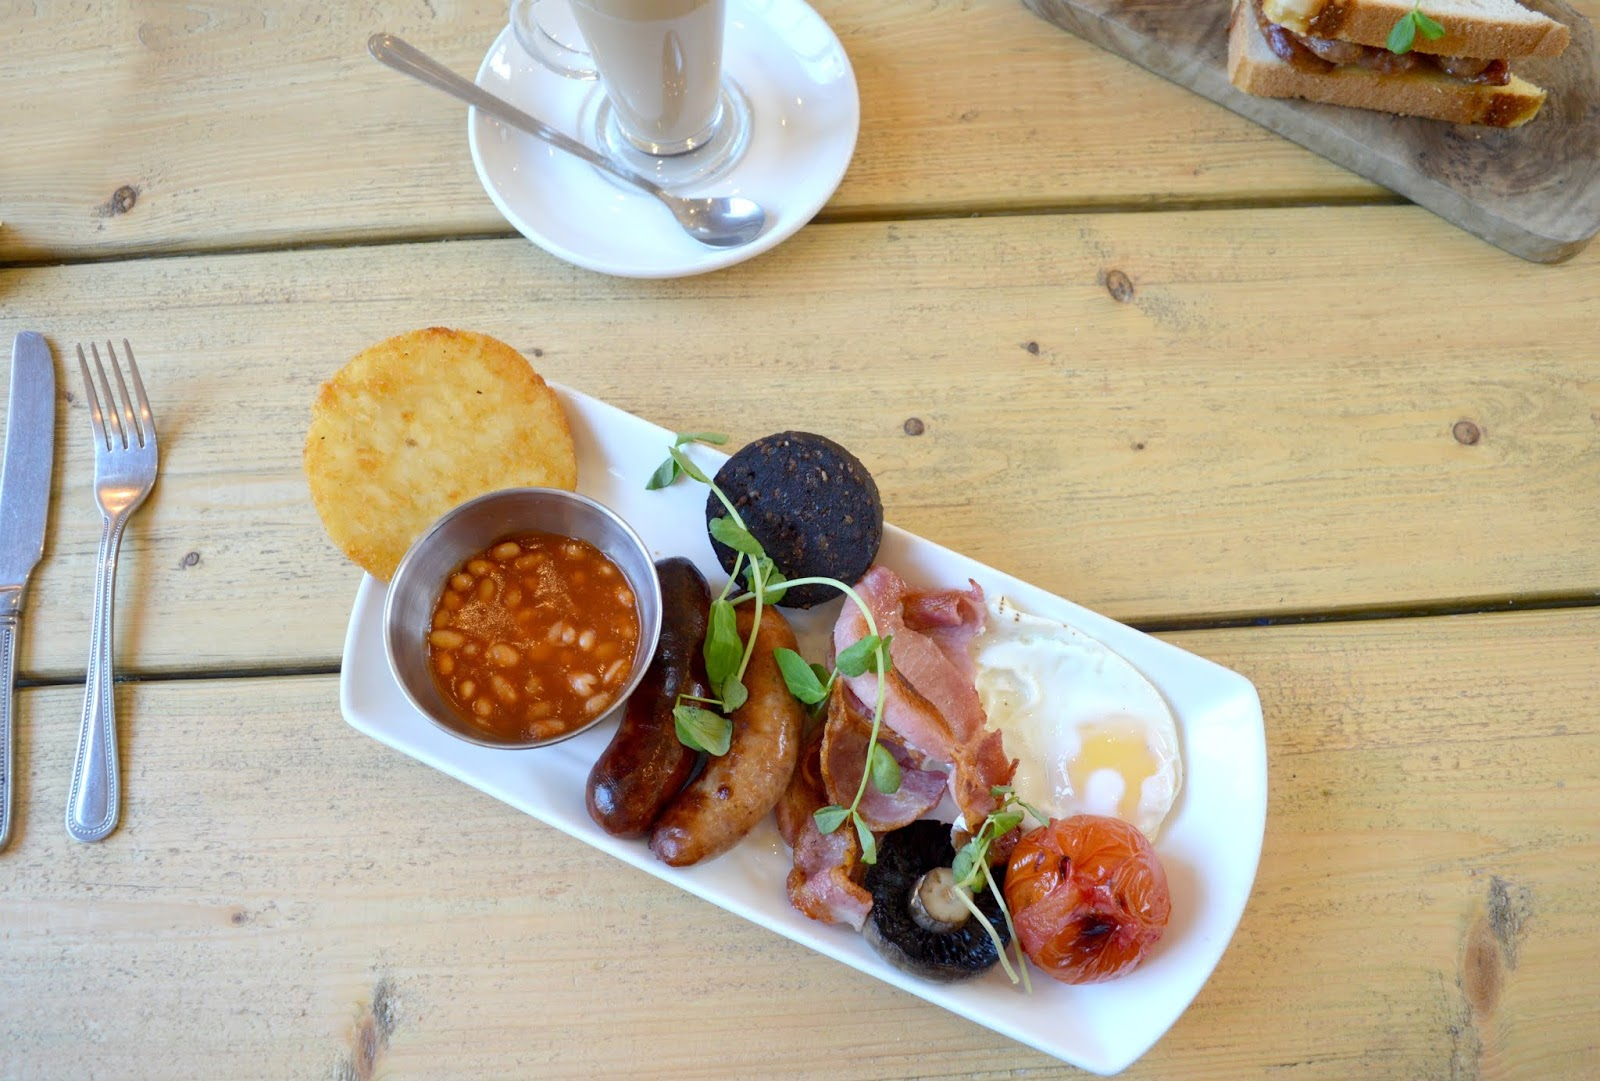 Breakfast at Olives at The Station, Whitley Bay